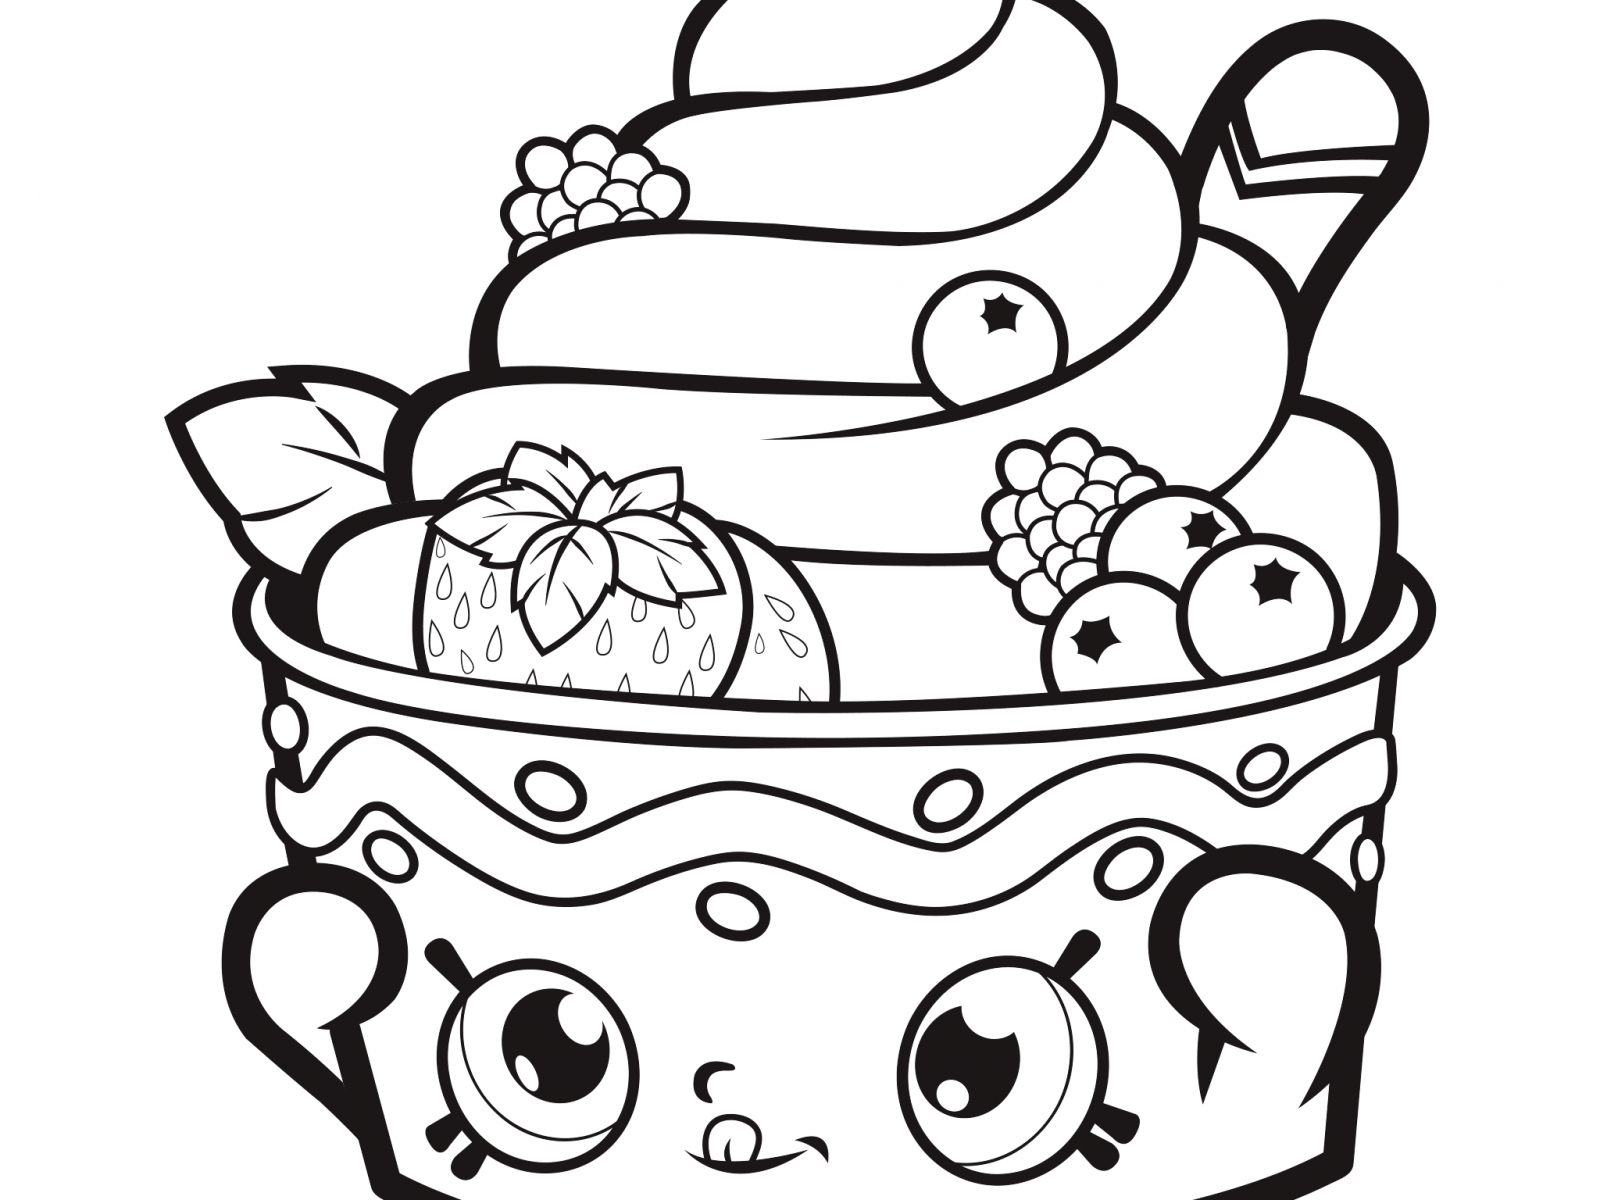 1600x1200 Unique Ice Cream Pictures To Color Coloring Pages Printable